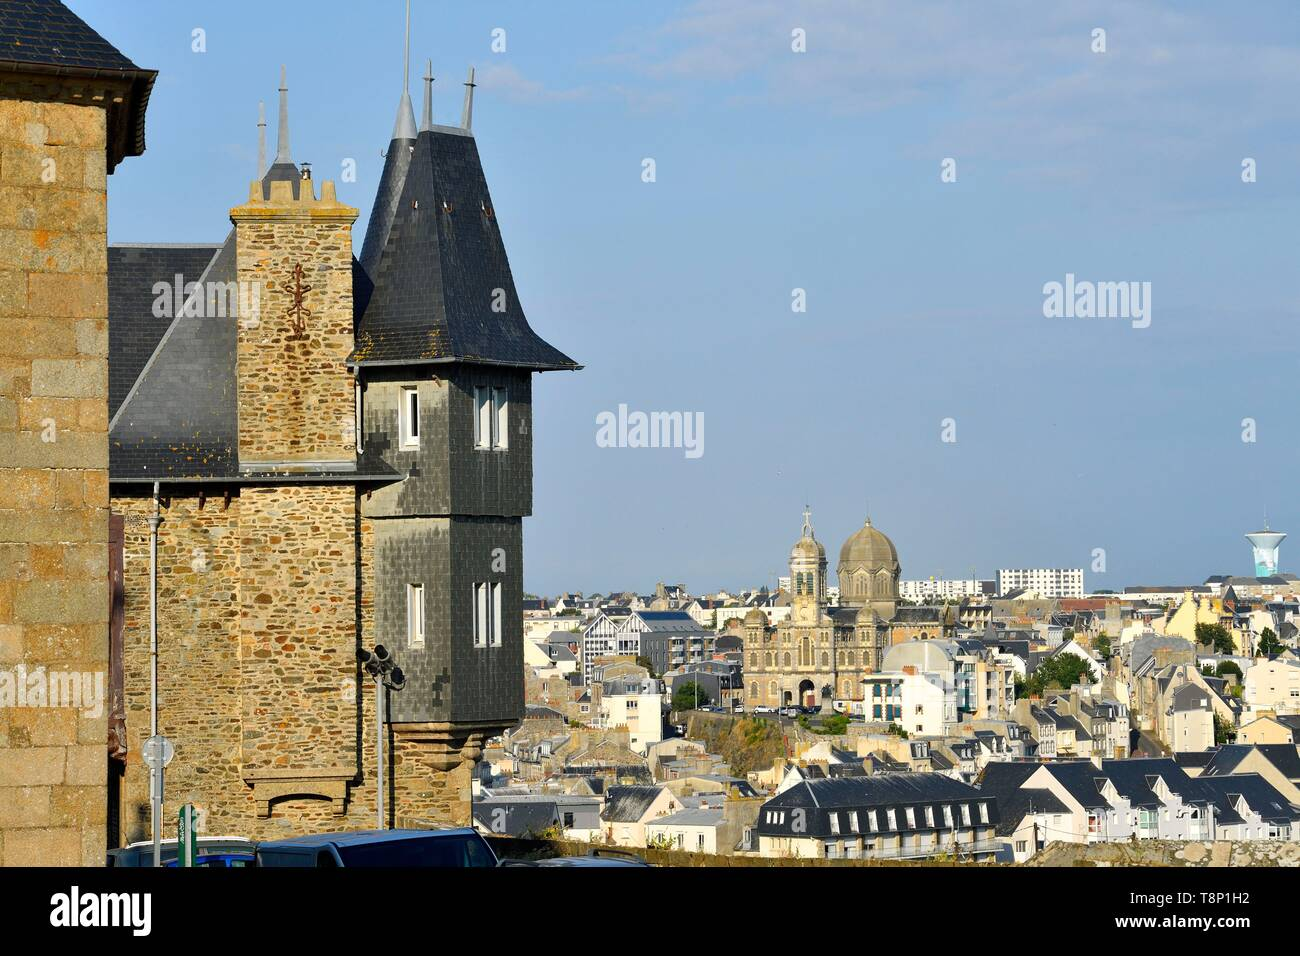 France, Manche, Cotentin, Granville, the Upper Town built on a rocky headland on the far eastern point of the Mont Saint Michel Bay, in the background Saint Paul church - Stock Image